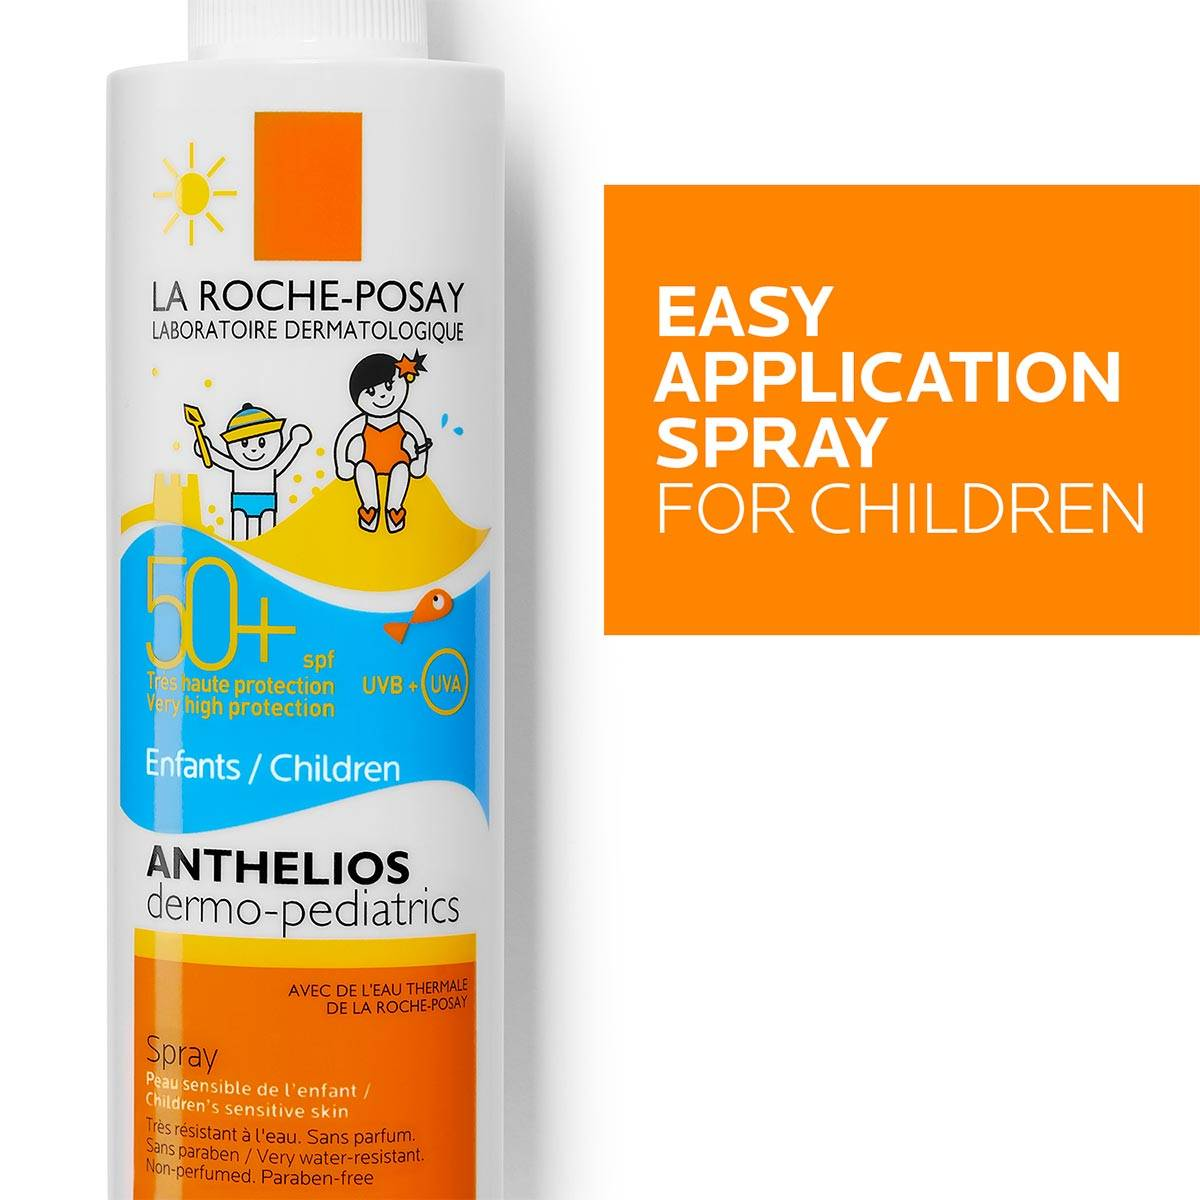 La Roche Posay ProductPage Sun Anthelios DP Spray Spf50 200ml 33378724